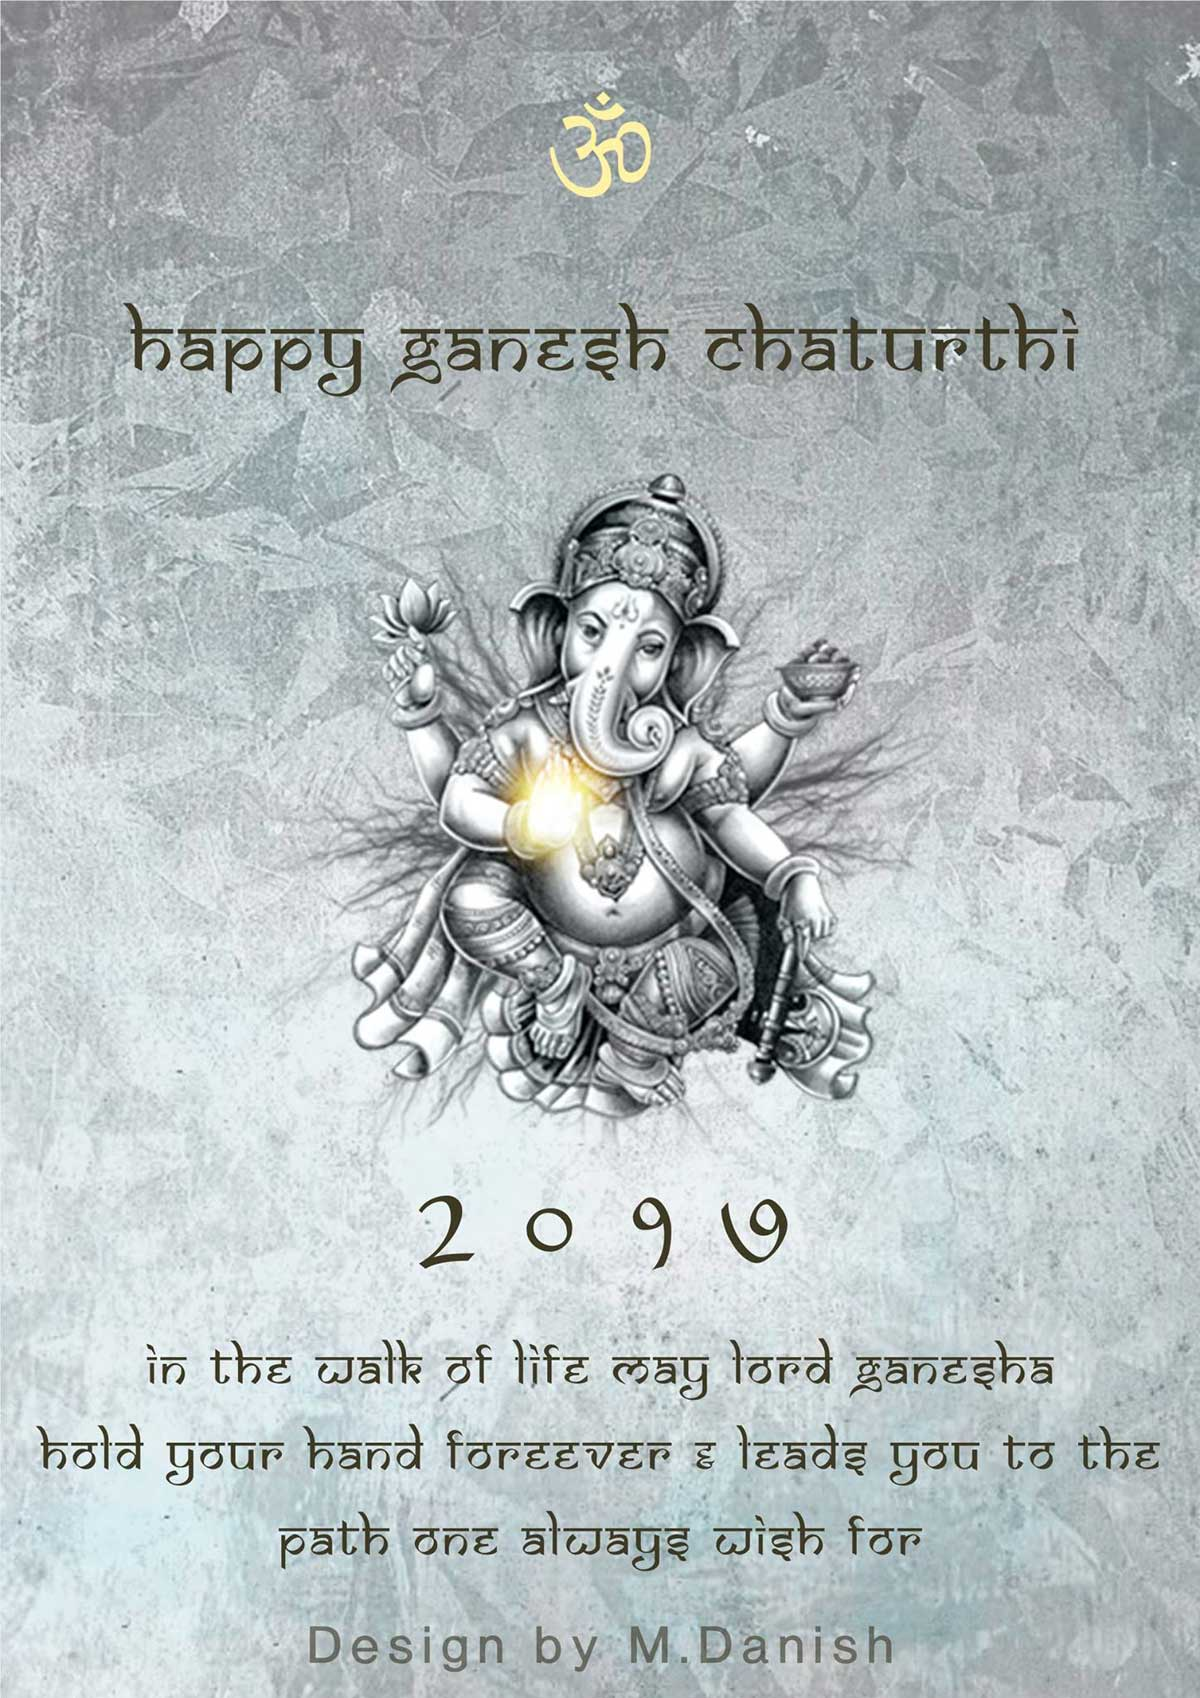 GANESH CHATURTHI CELELBRATION - Student Activities